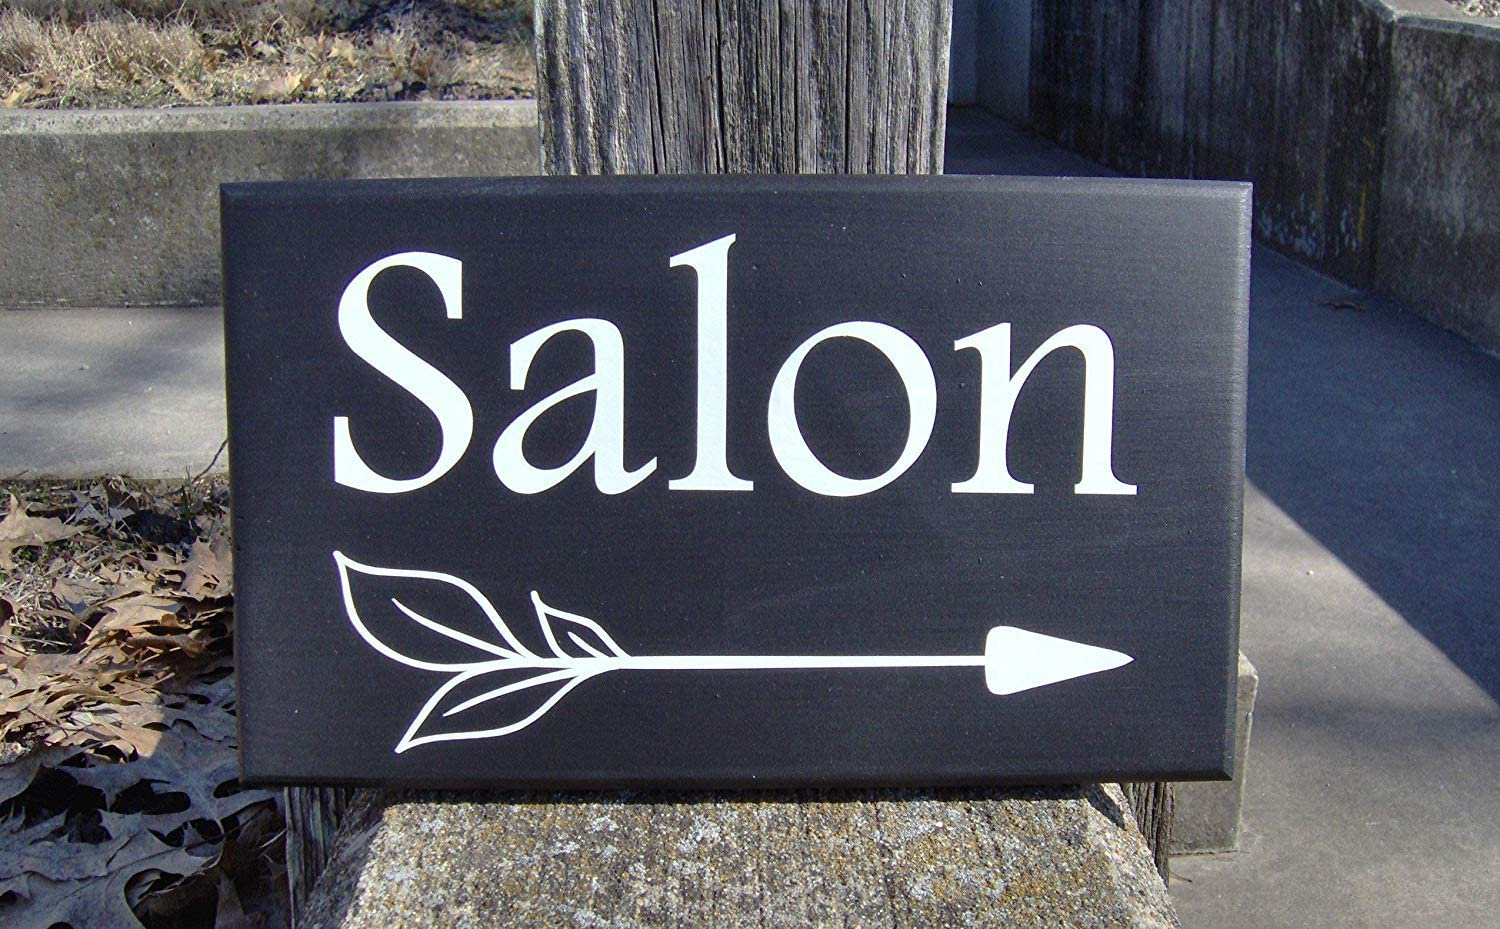 NOT BRANDED 16x24cm Salon Directional Arrow Sign Wooden Vinyl Signs Wall Decor Outdoor Exterior Home Business Signage Health and Beauty Spa Massage Therapy Art 810435